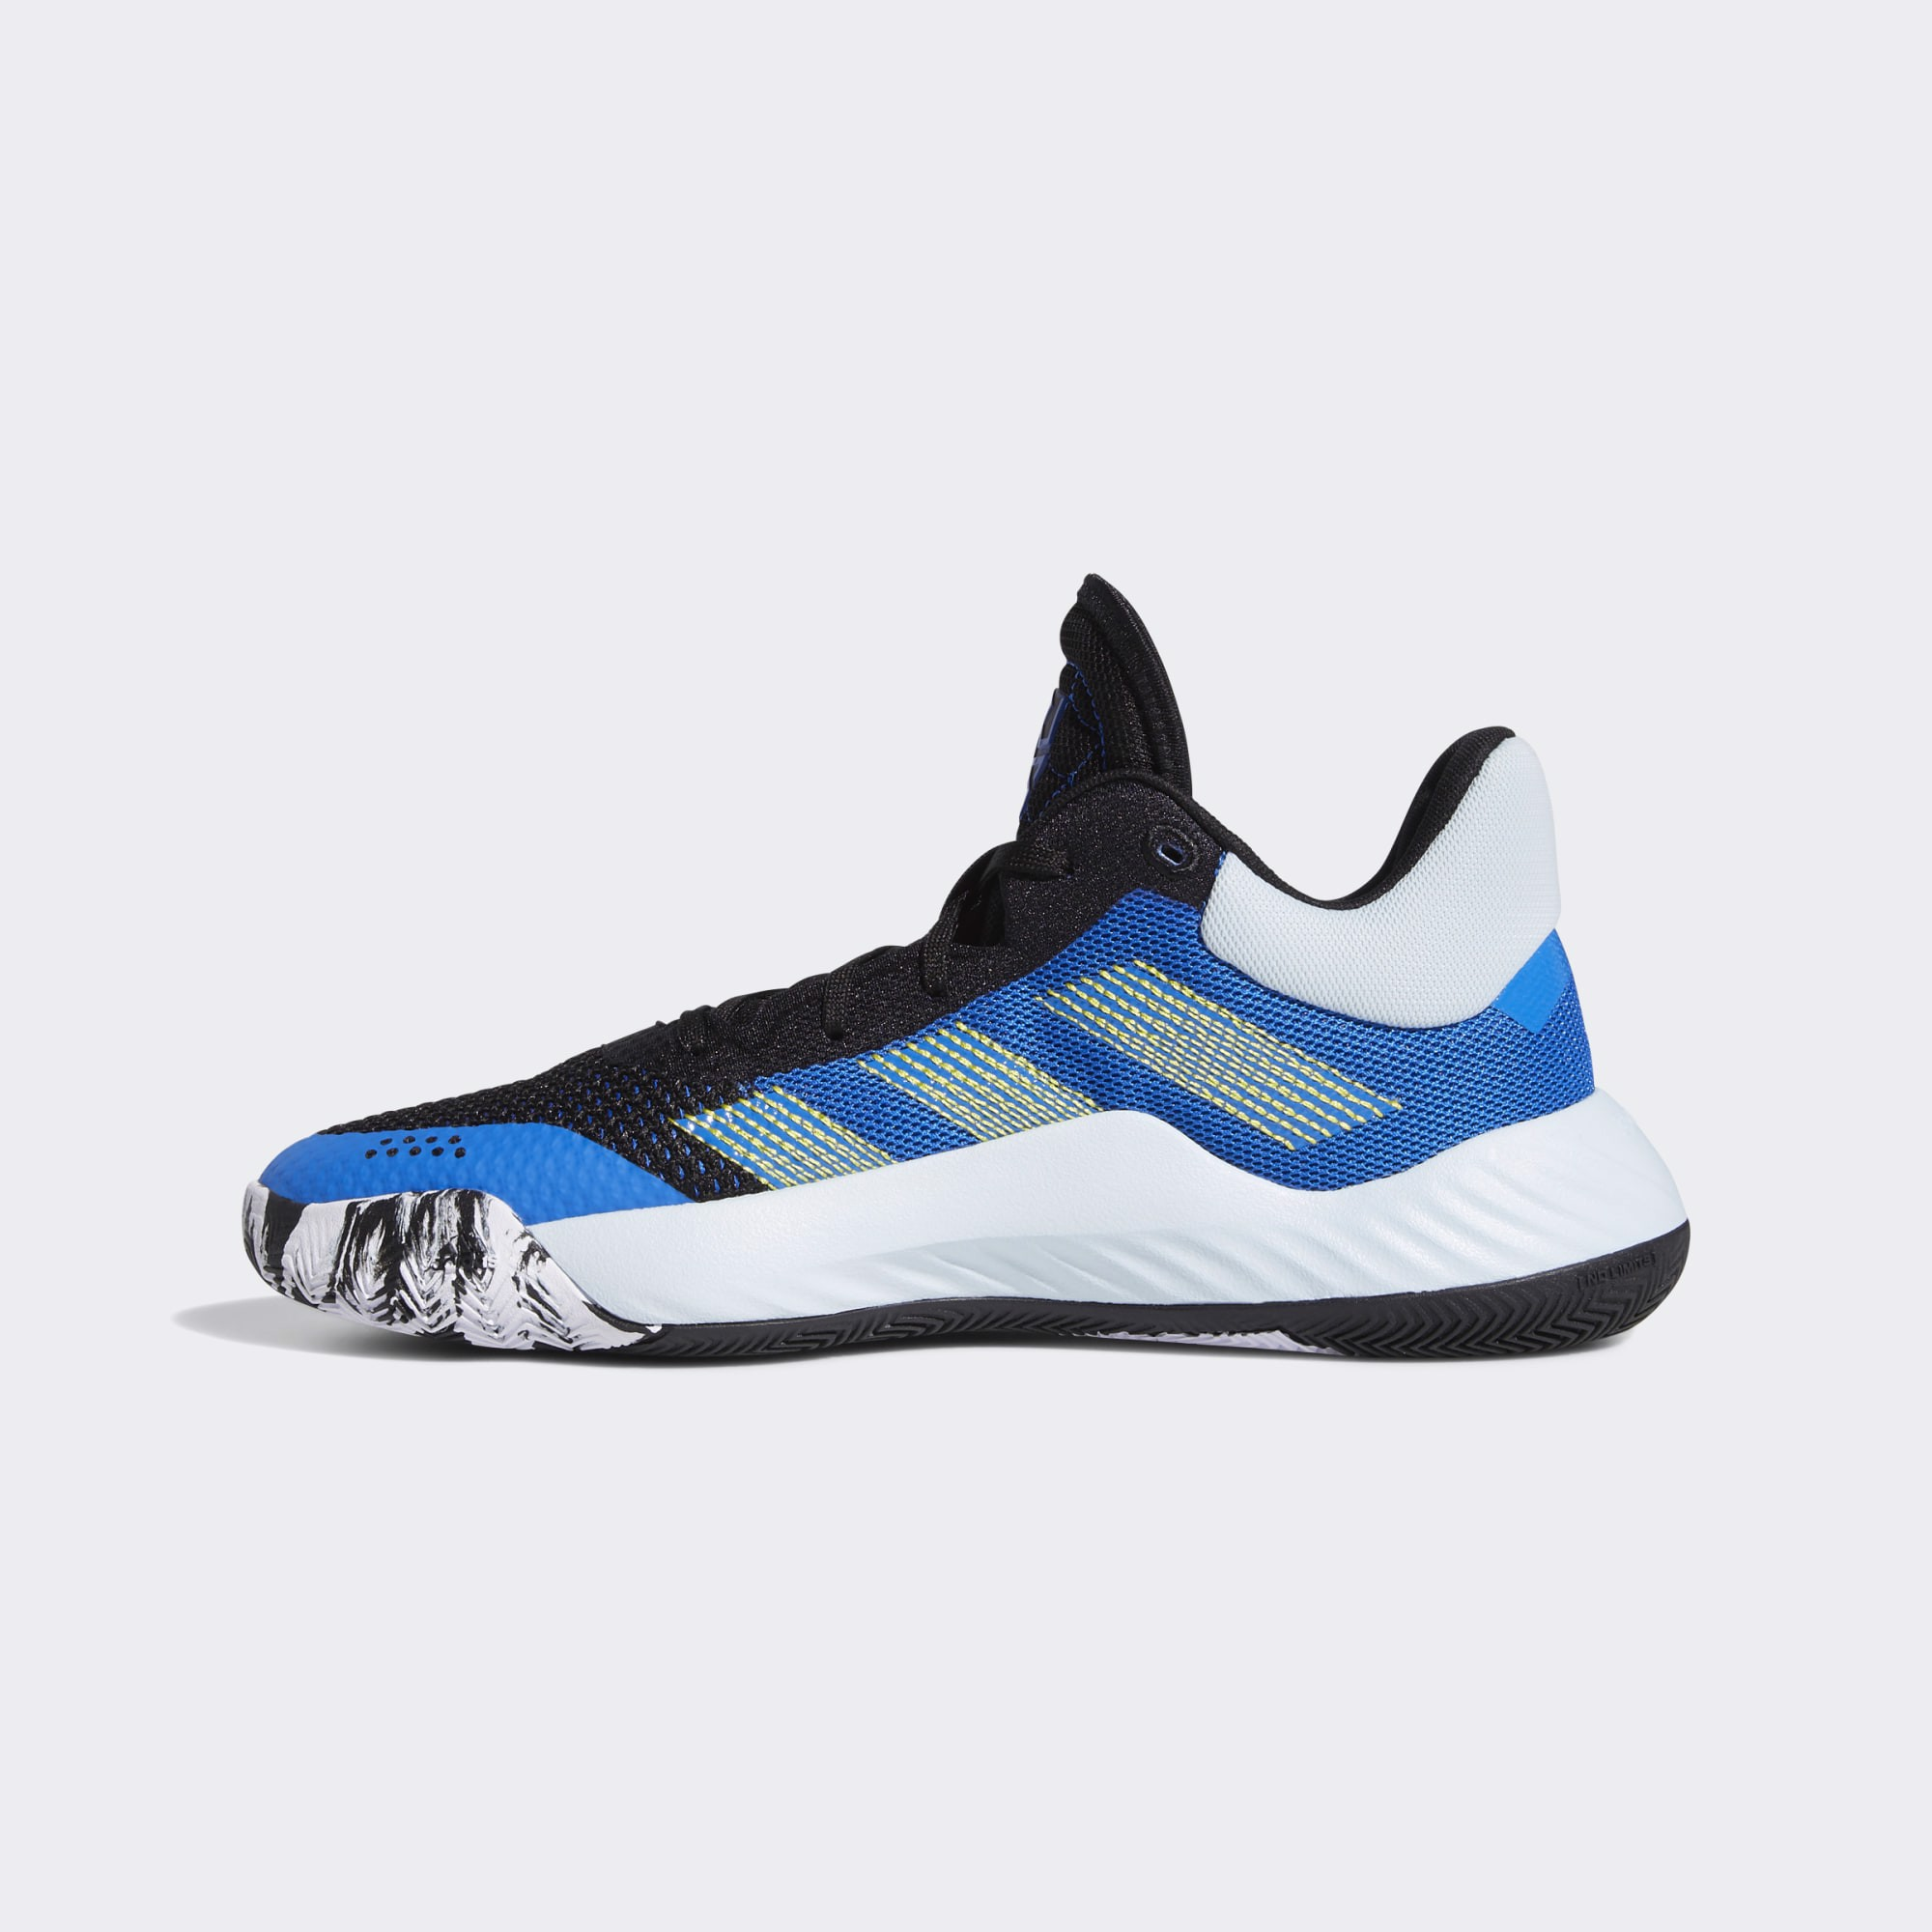 adidas DON Issue 1 Glow Blue